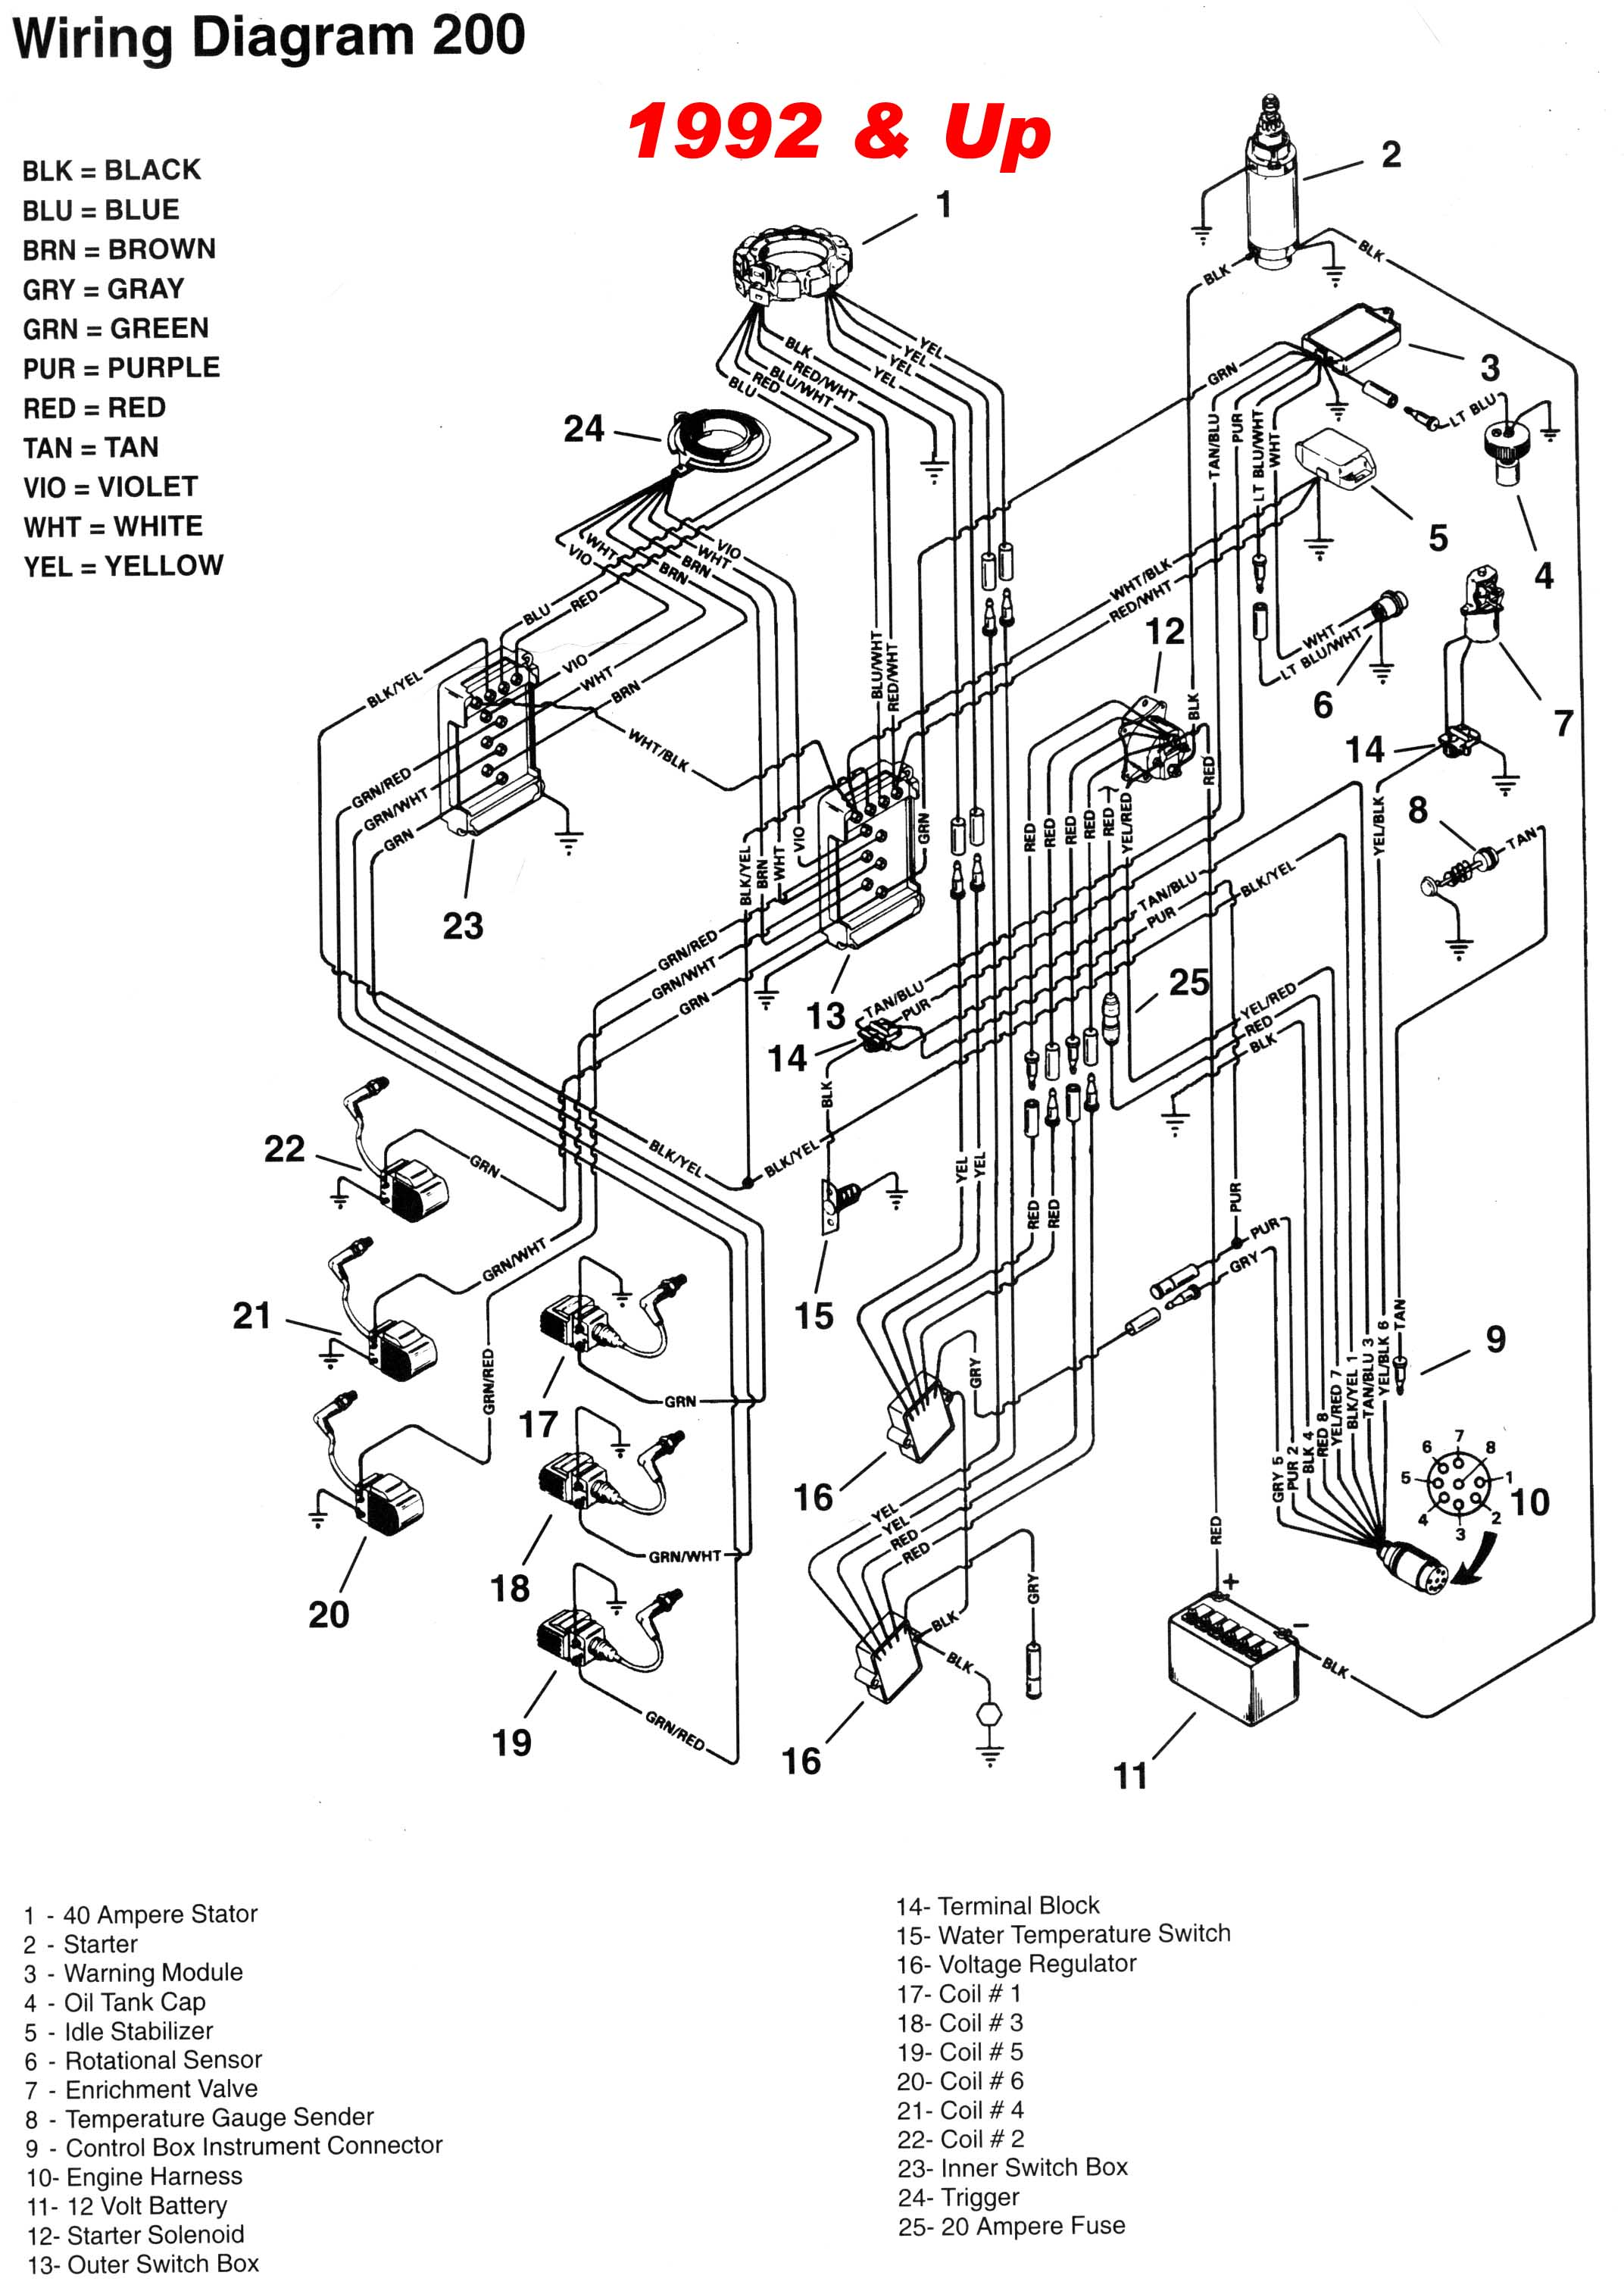 Mercury Wiring Harness Diagram Libraries For A 1996 Ford F 350 73 Dfi Diagrams 850 Third Levelwiring Outboard Motor